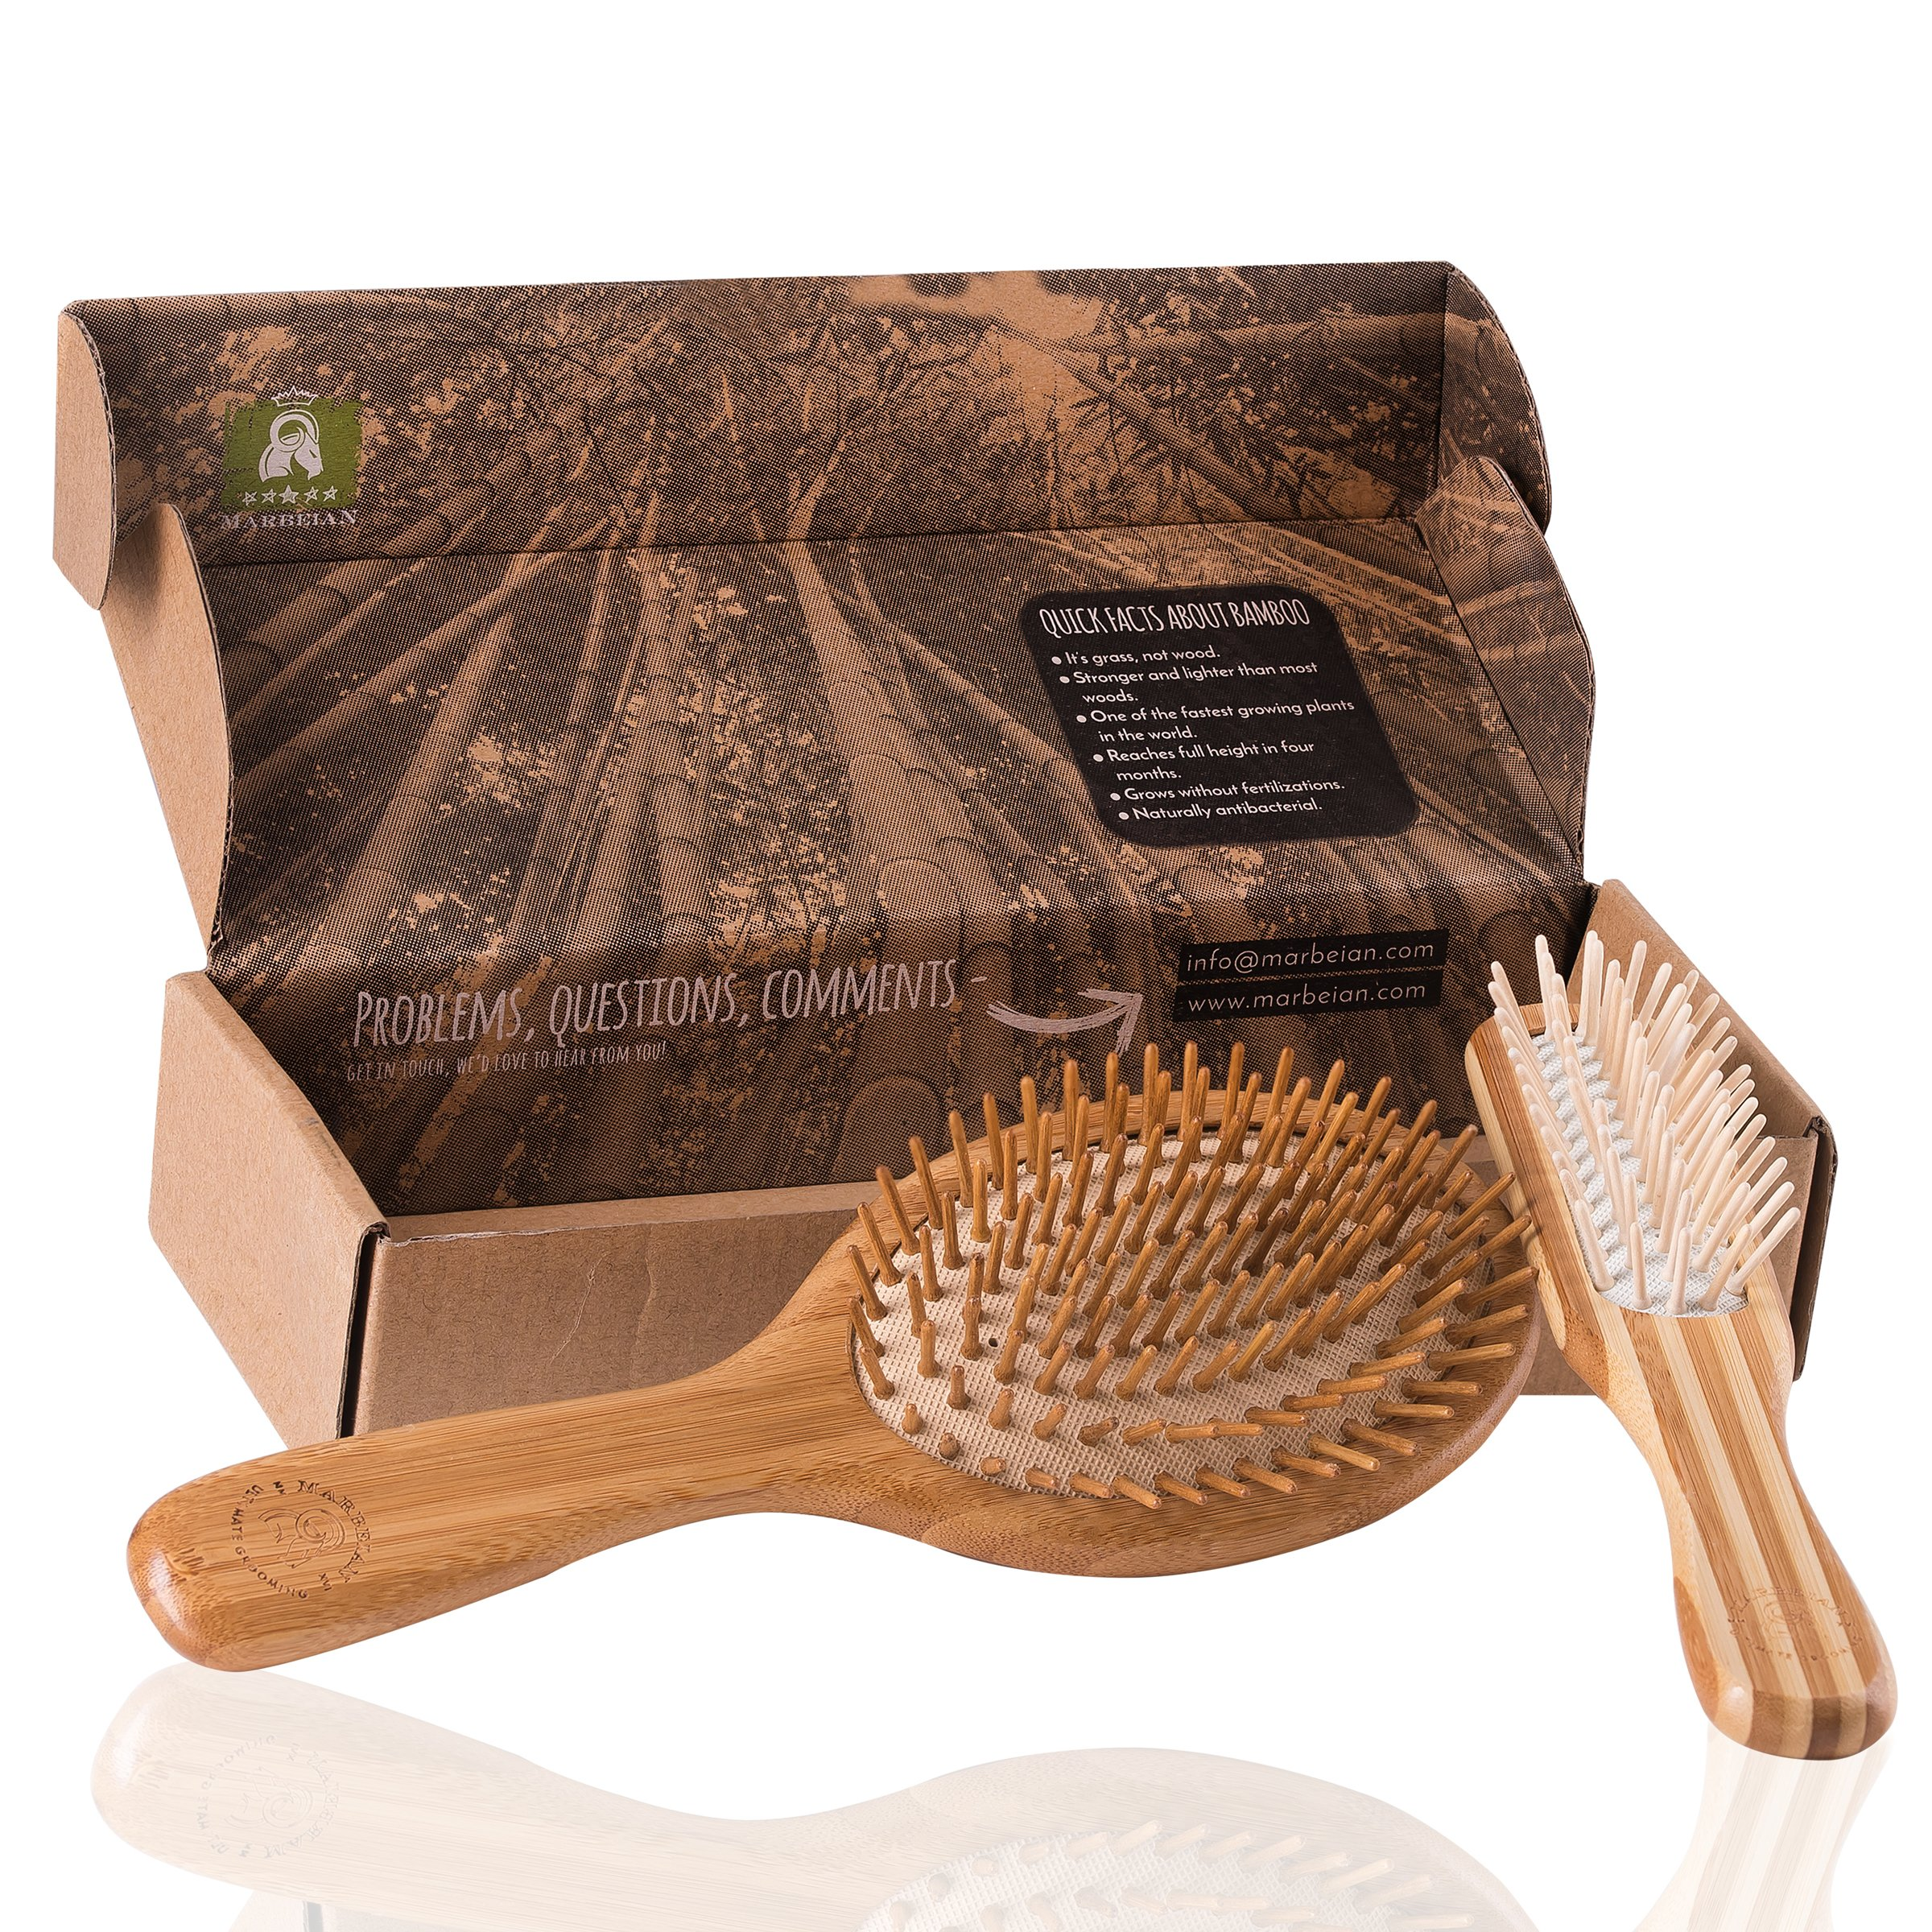 Natural Bamboo Hair Brush Set by Marbeian, Best Choice For Styling, Perfect For Men, Women, Kids & All Hair Types, Easy Glide Through